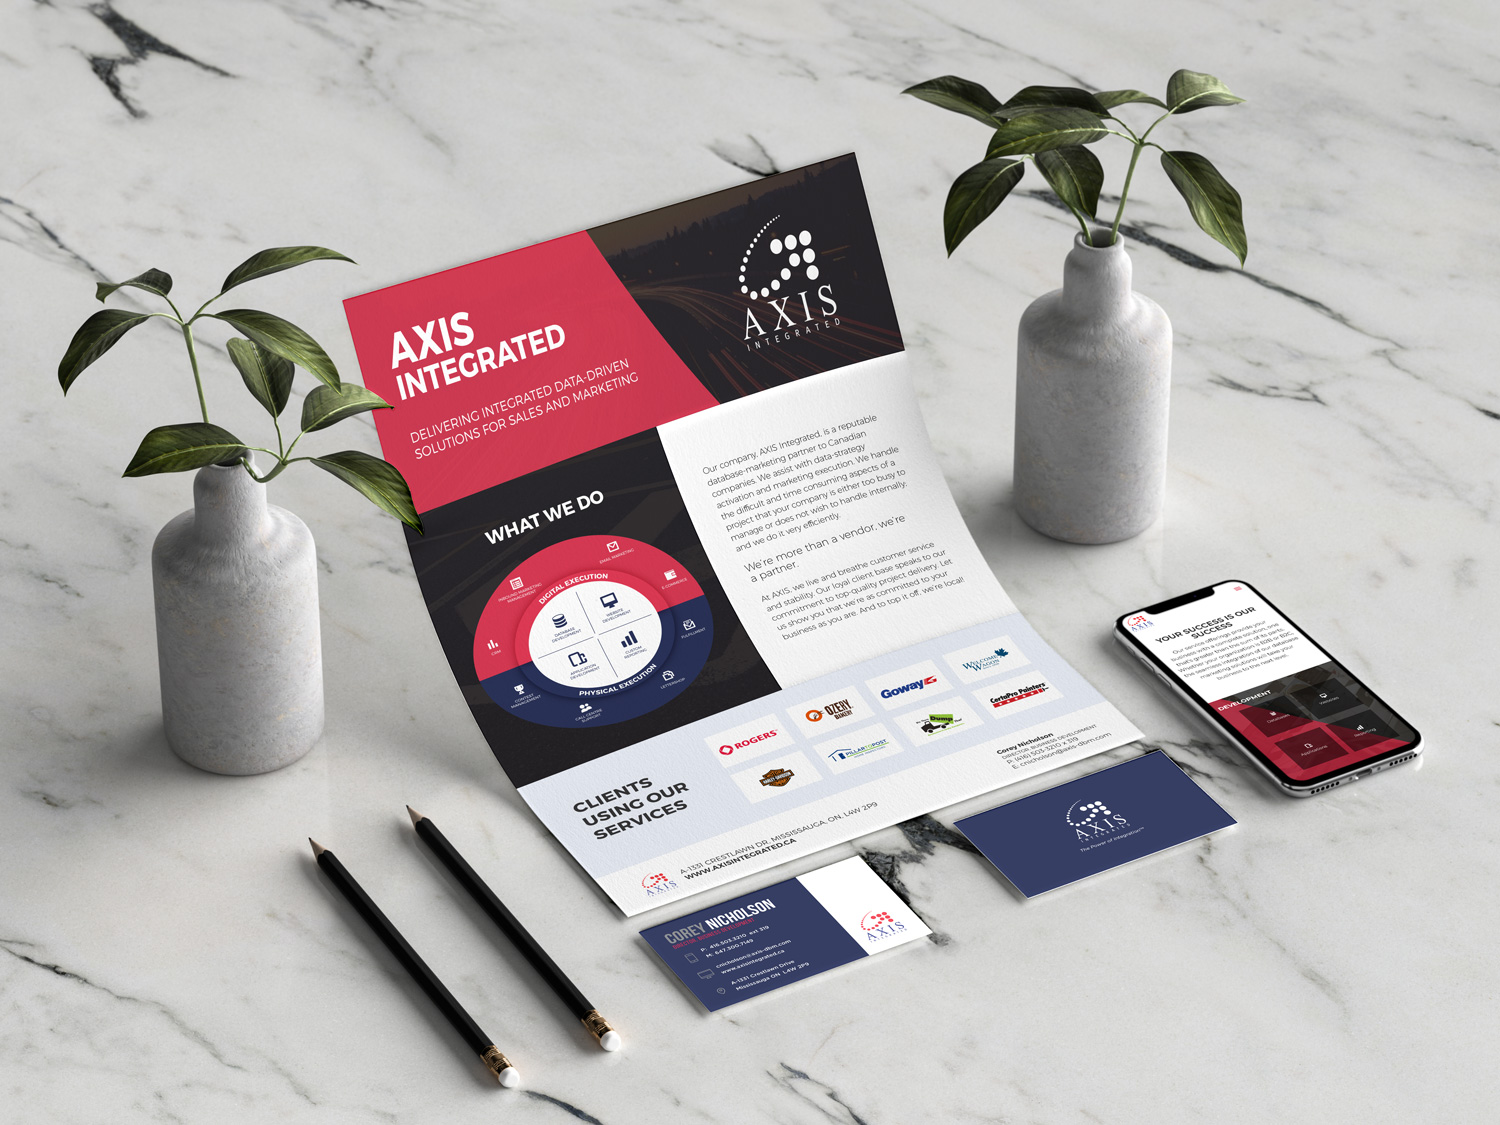 Examples of AXIS' branding